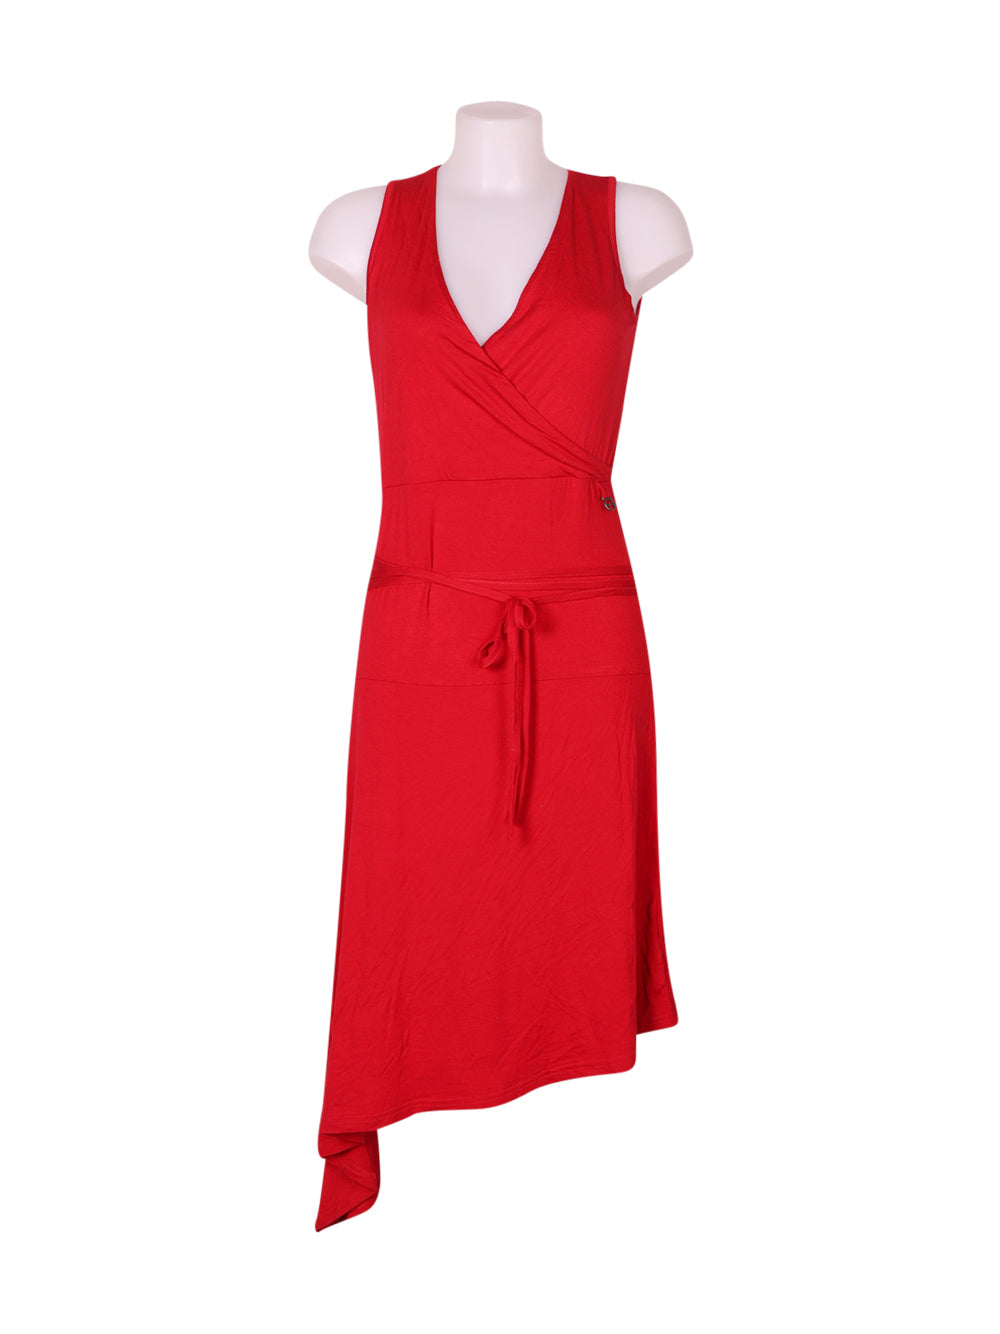 Front photo of Preloved Skunkfunk Red Woman's dress - size 8/S